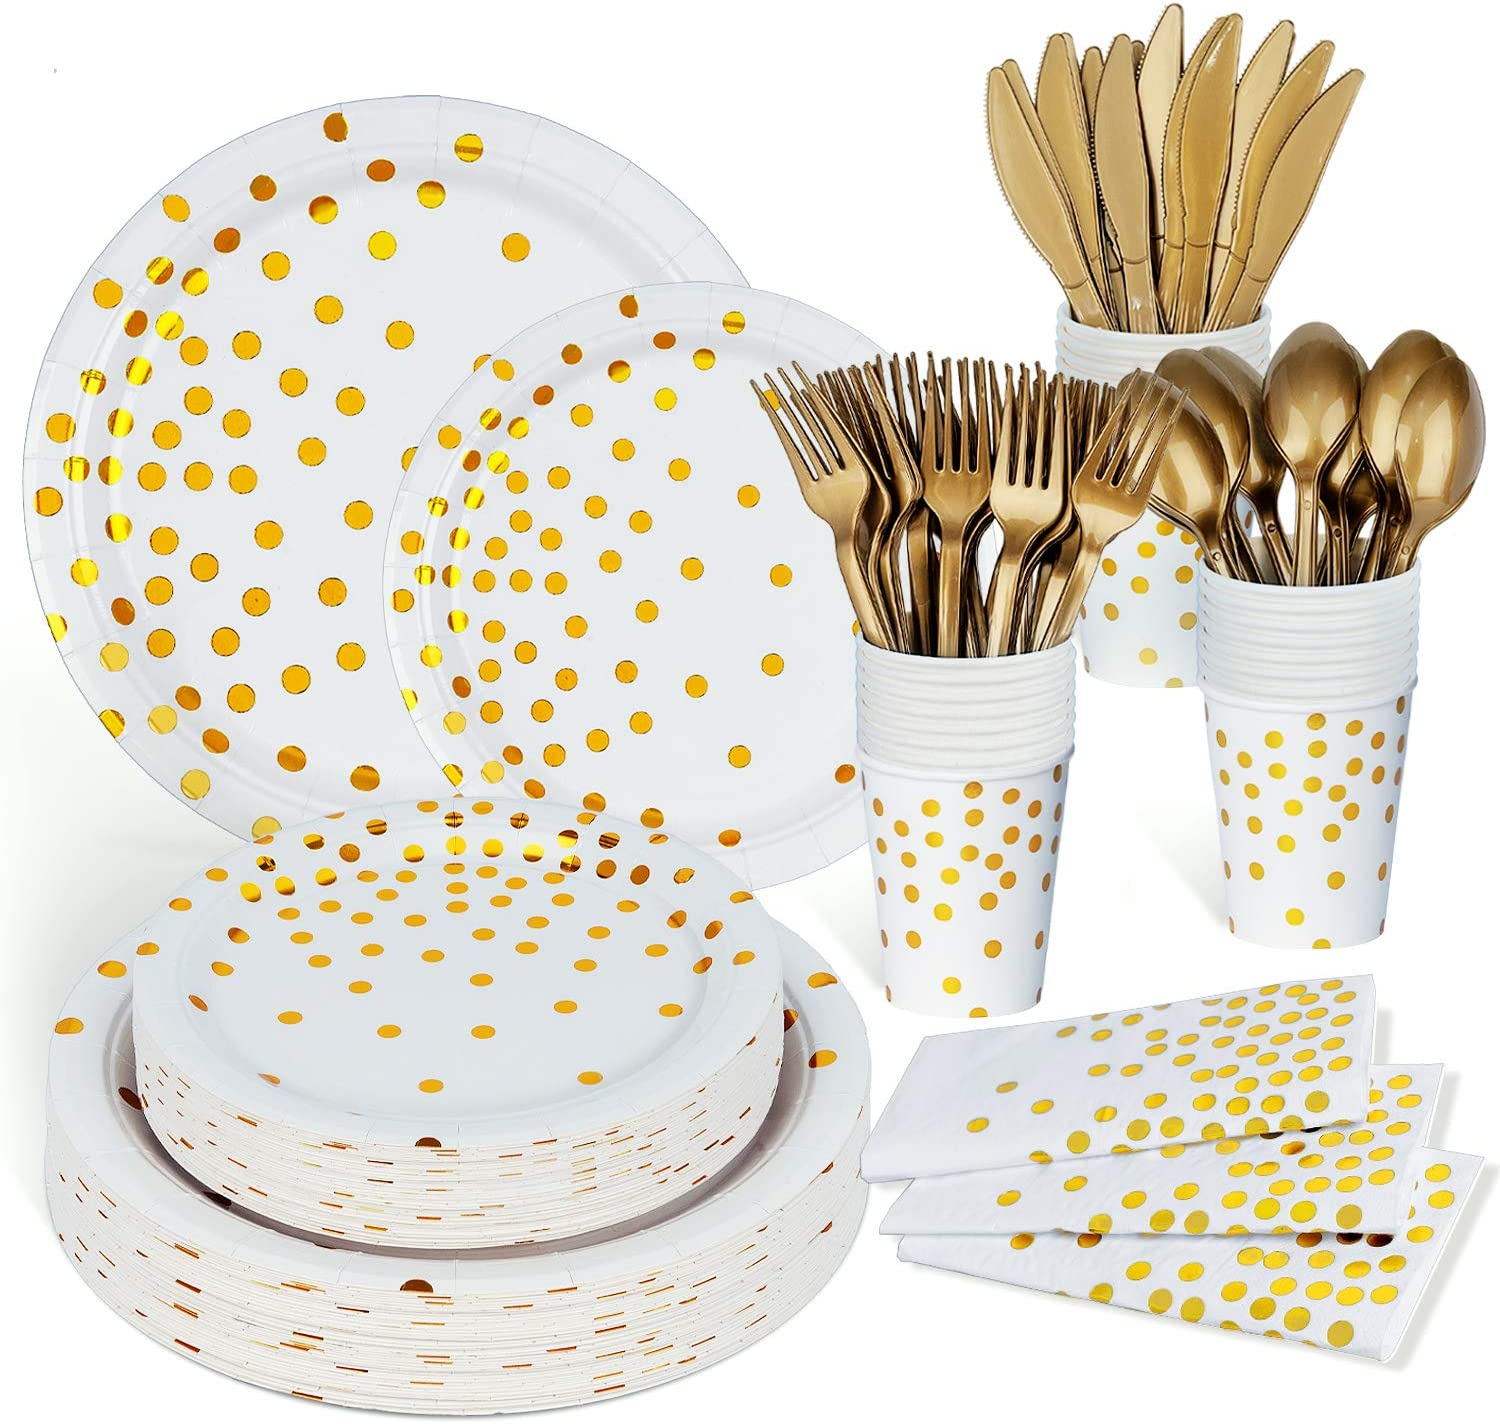 450PCS Party Plates and Napkins Sets for 50, White and Gold Birthday Party Supplies, Including 100 Pack Napkins, Plates, Cups, Utensils for Baby Shower